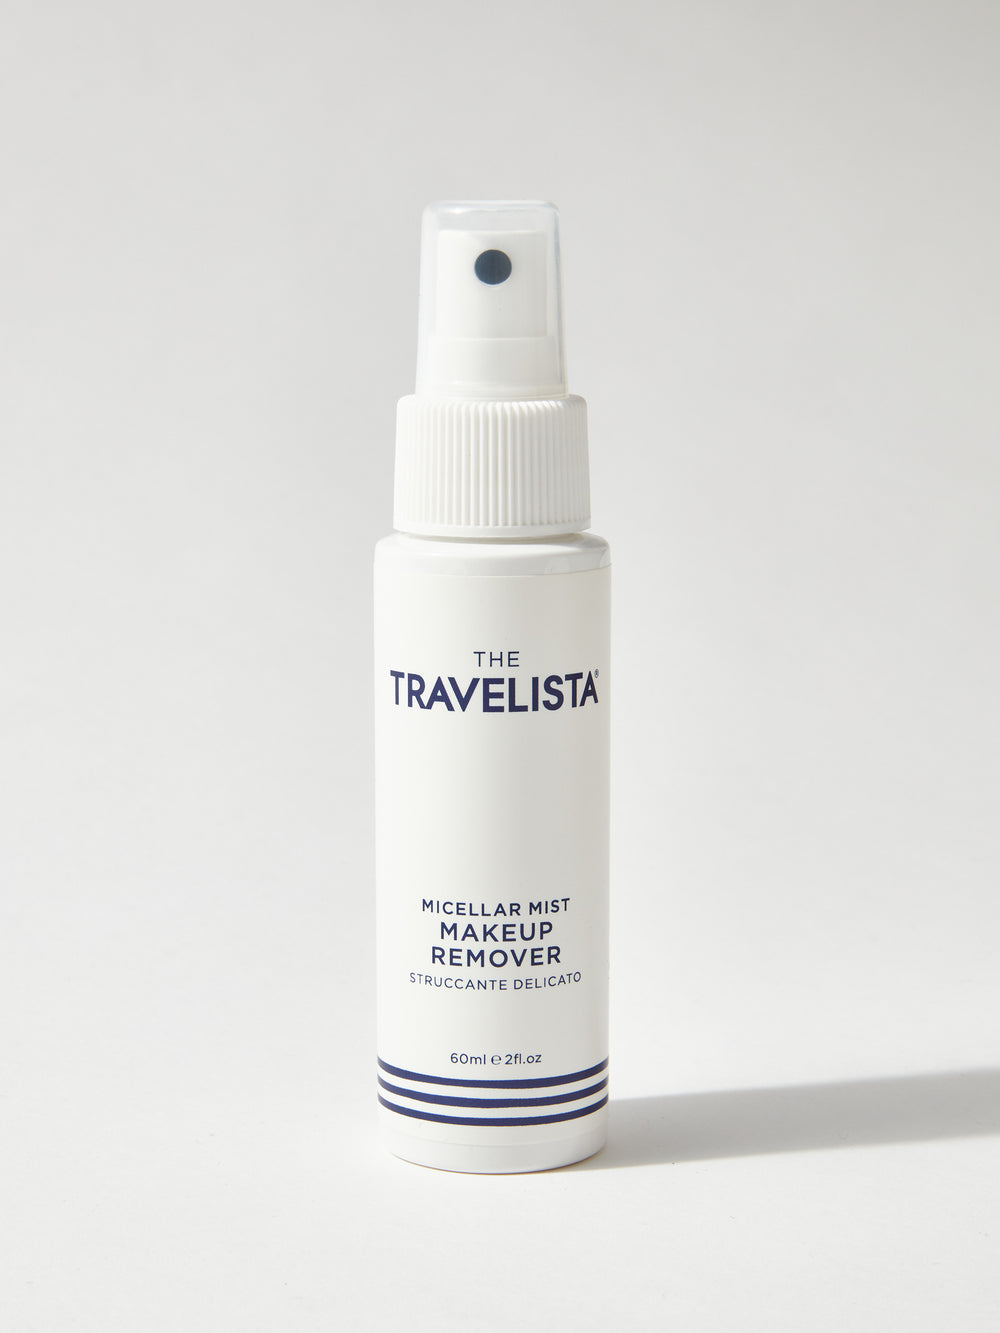 the travelista micellar mist makeup remover